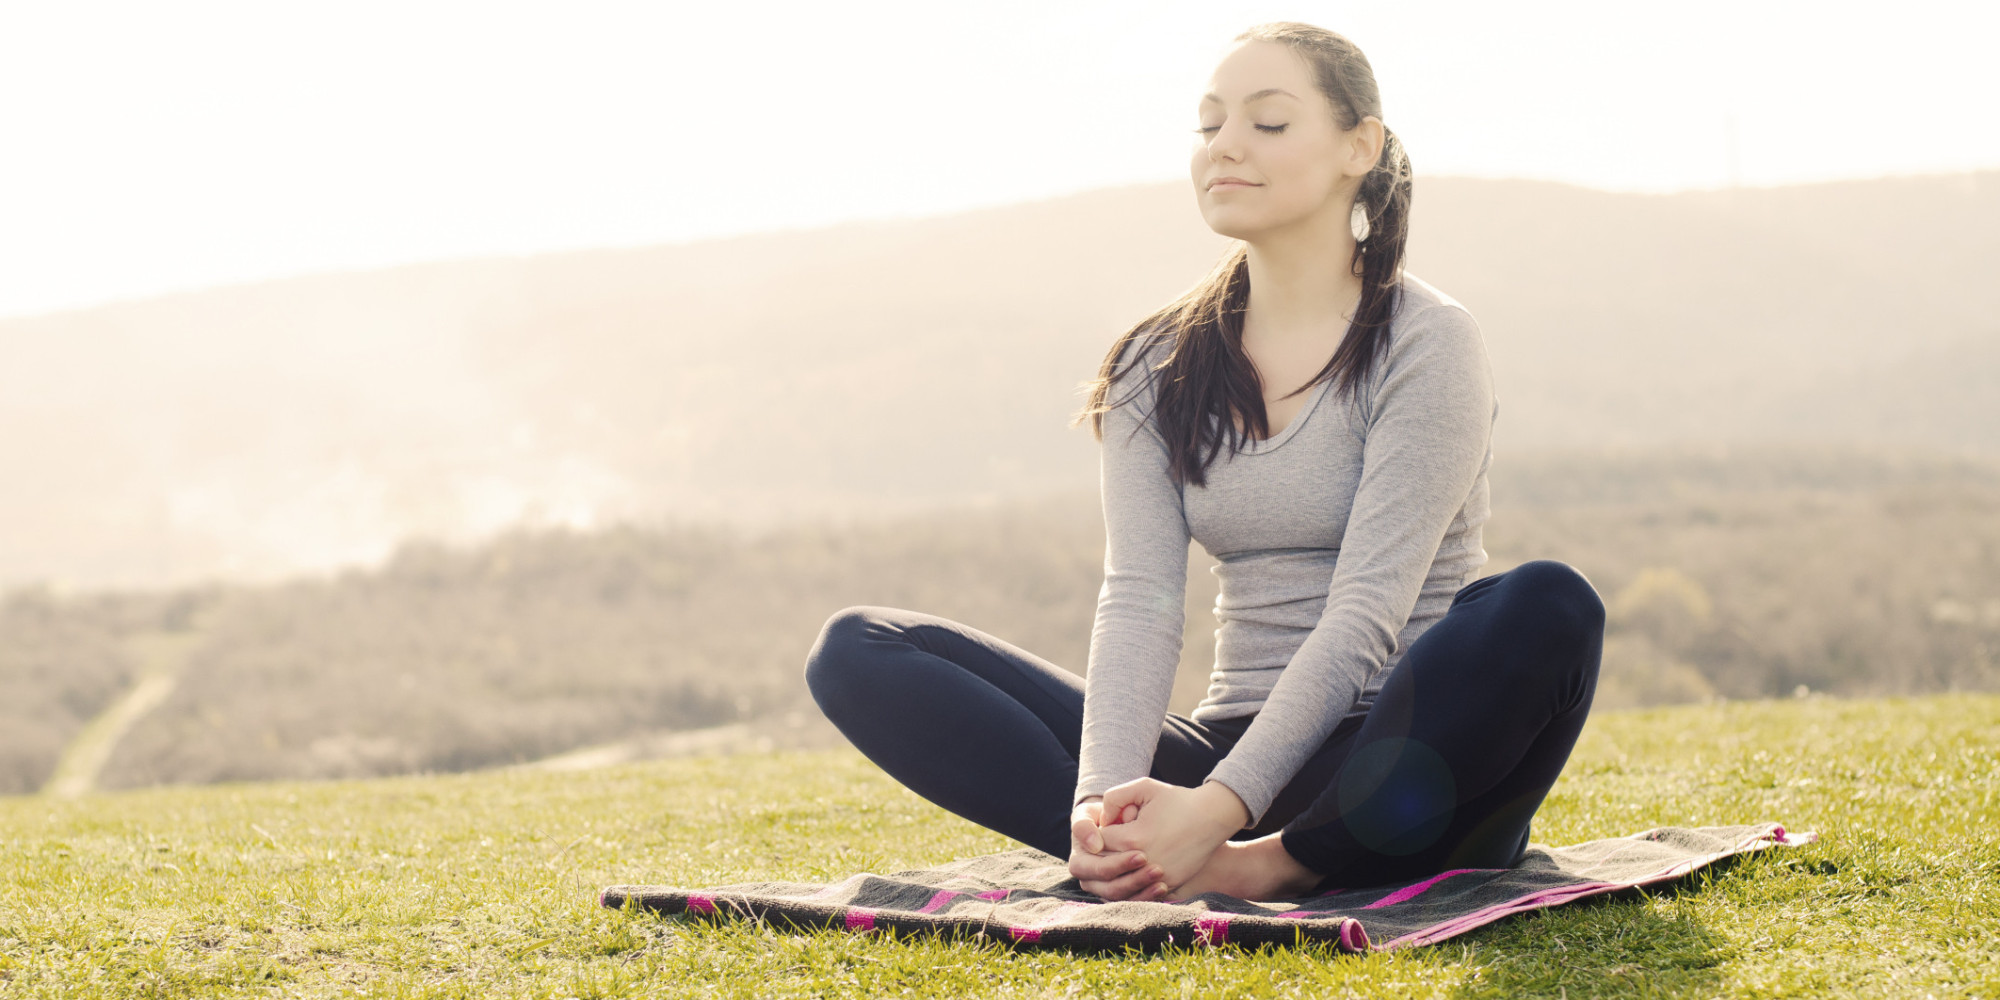 What Are Your Tips For Effective Meditation? 6